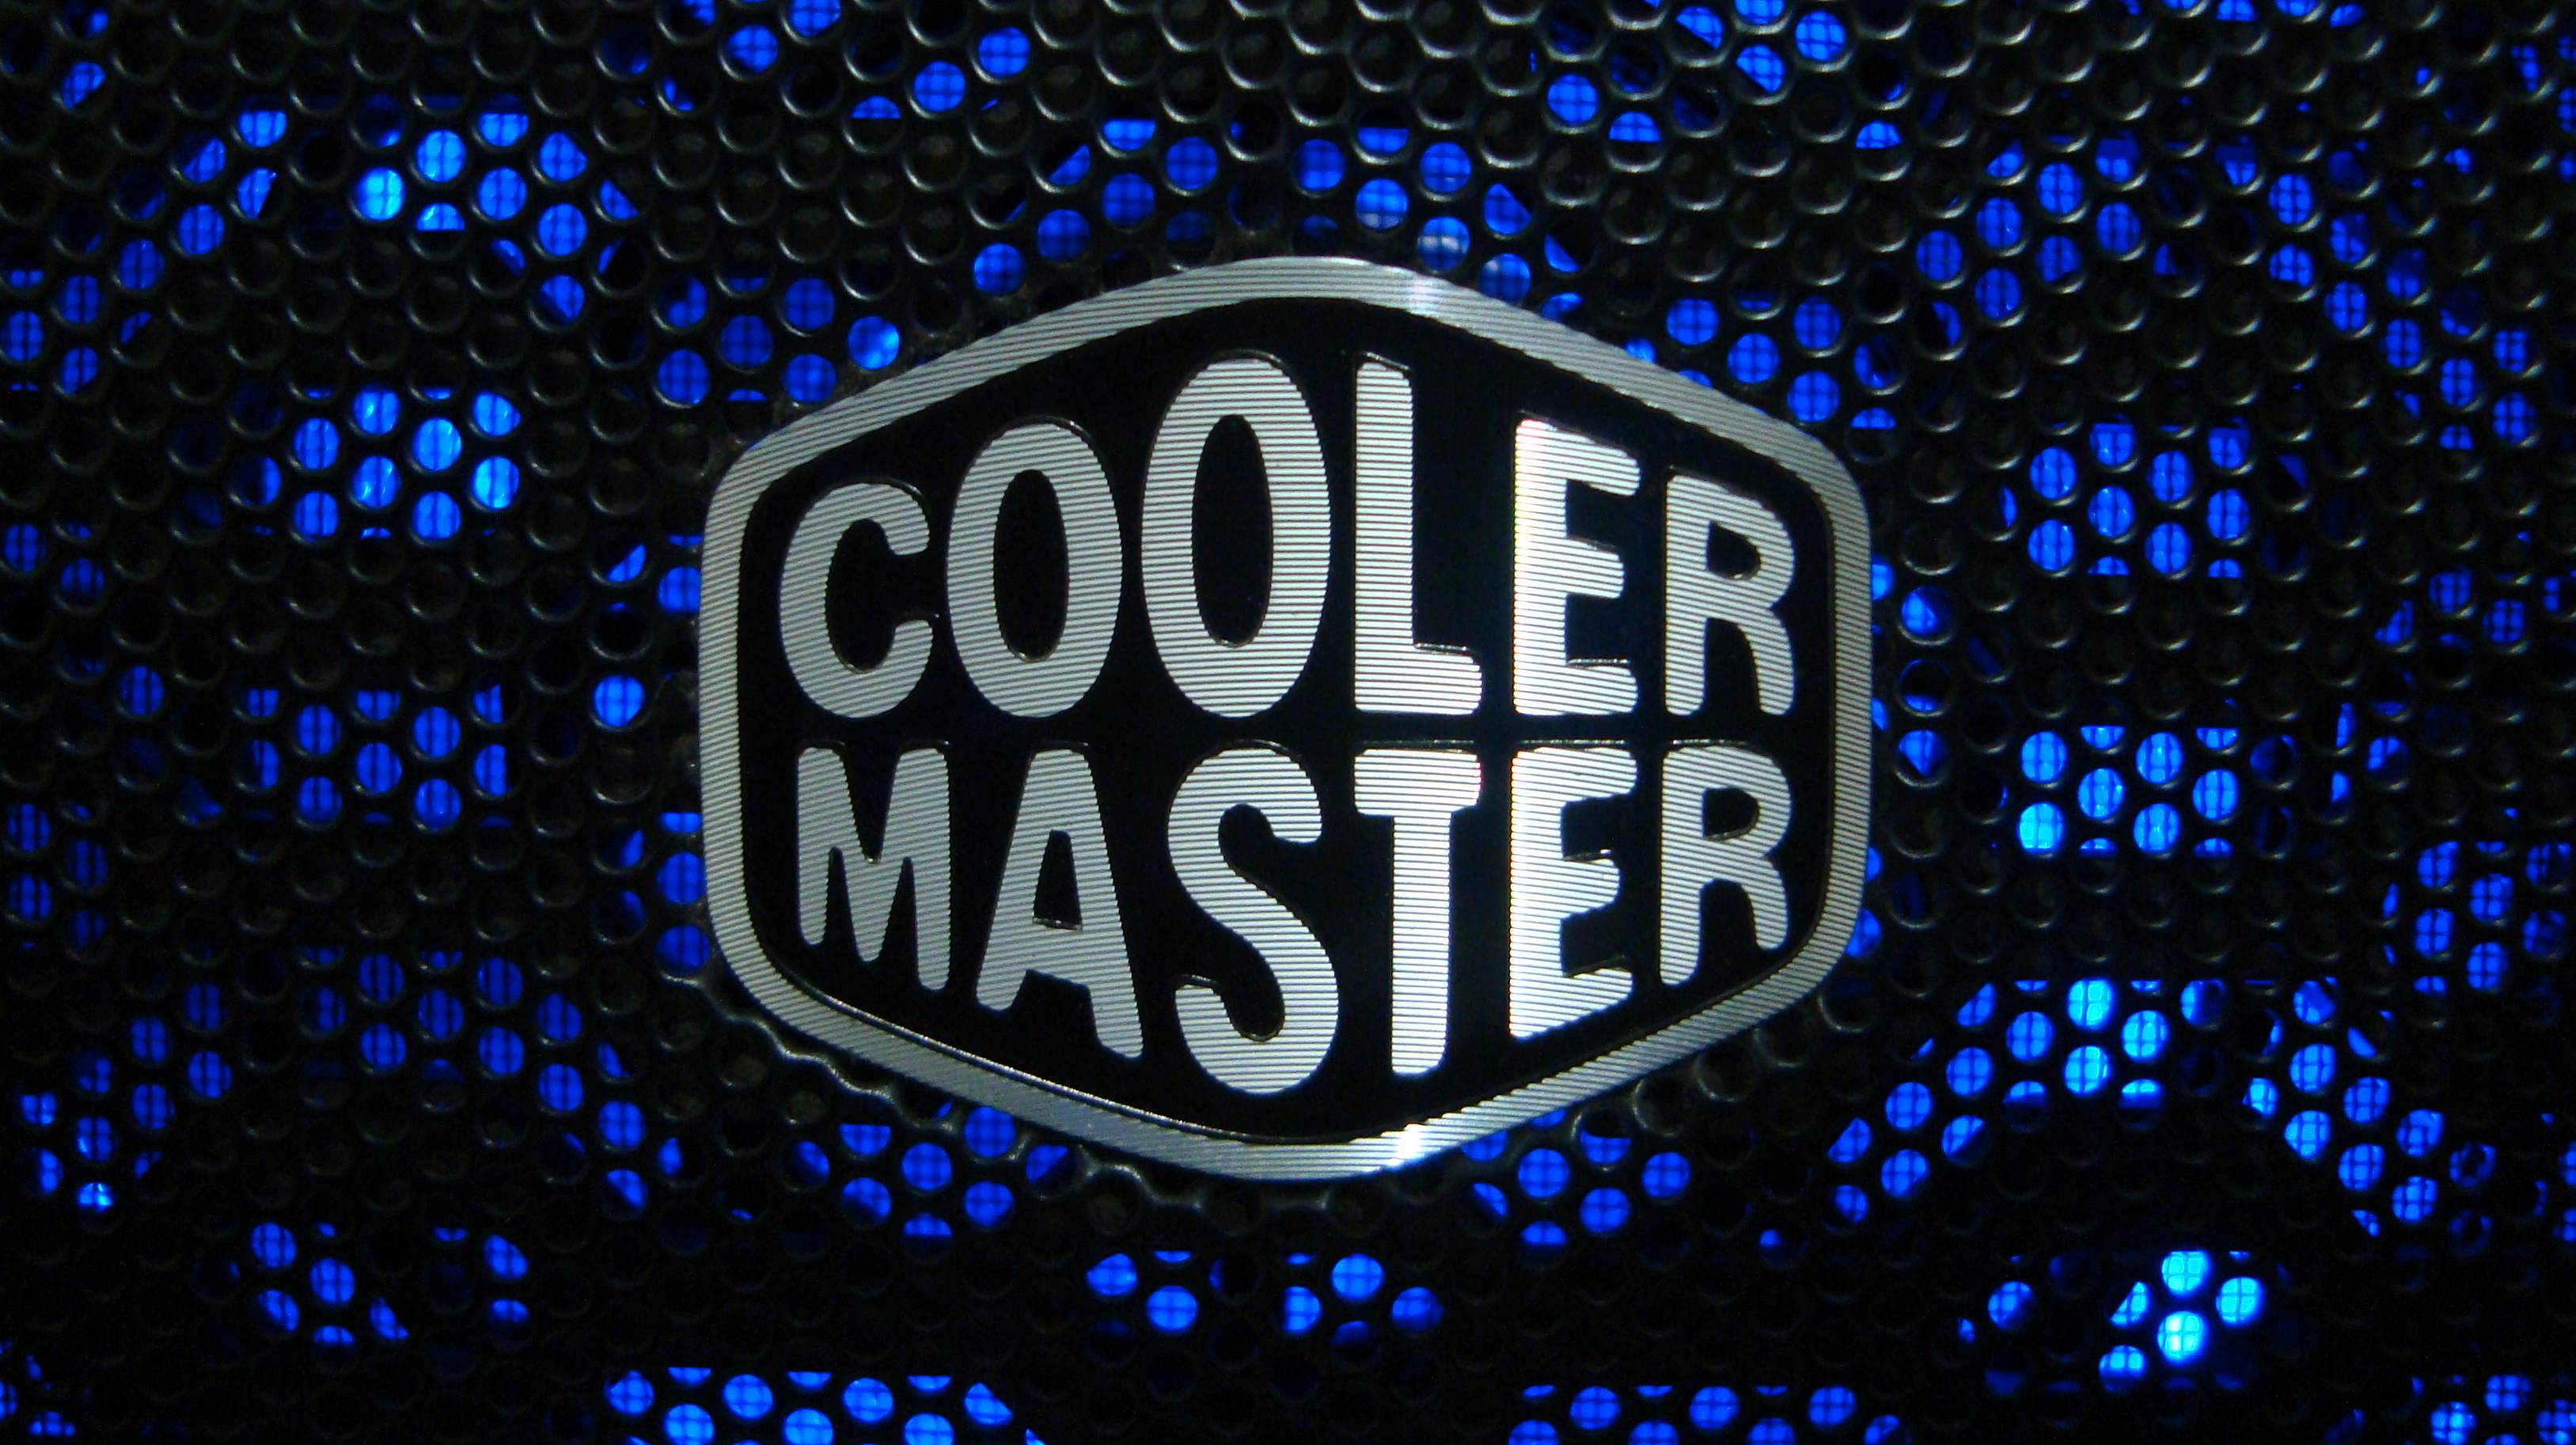 Cooler Master 690 Luminous Front Wallpaper By Atkhan On DeviantArt